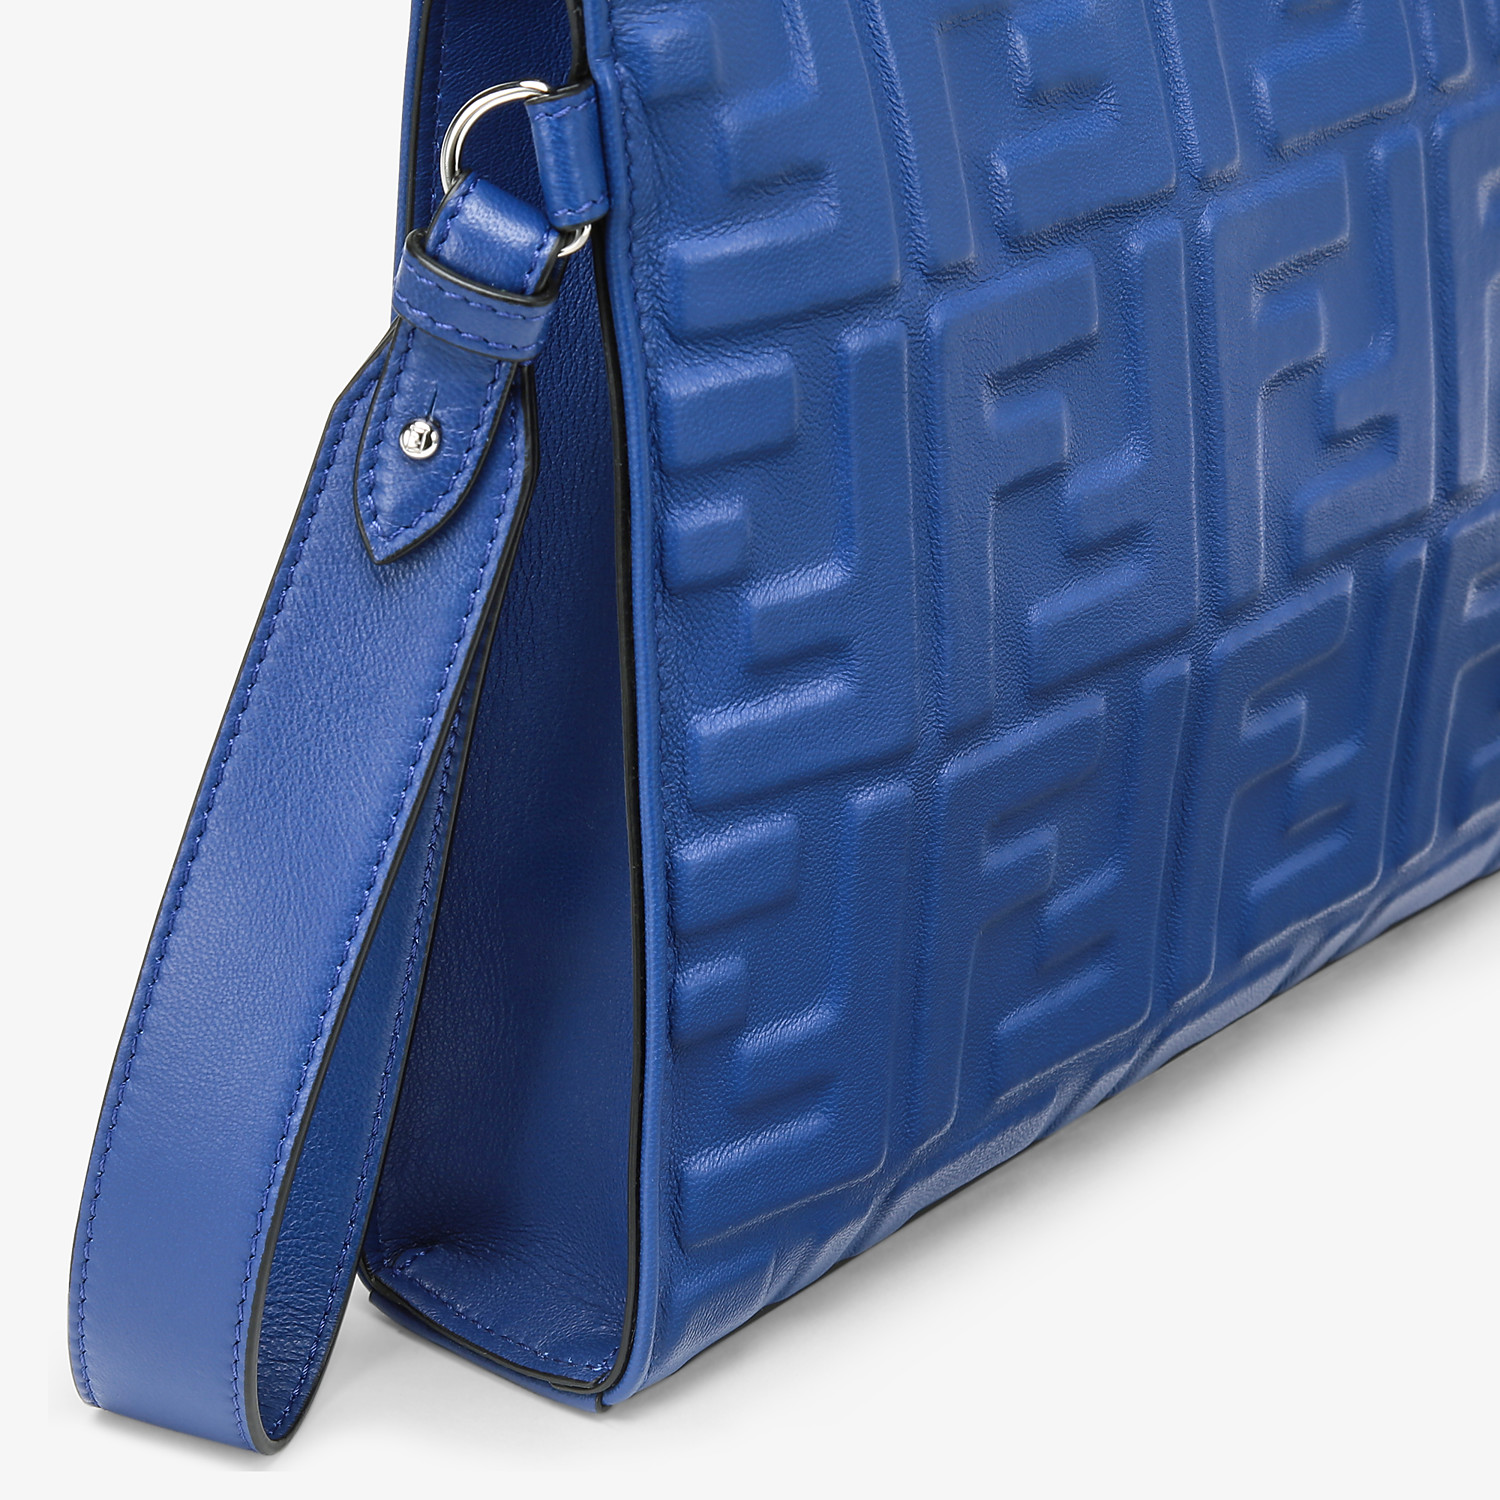 FENDI FLAT POUCH - Blue nappa leather pouch - view 5 detail